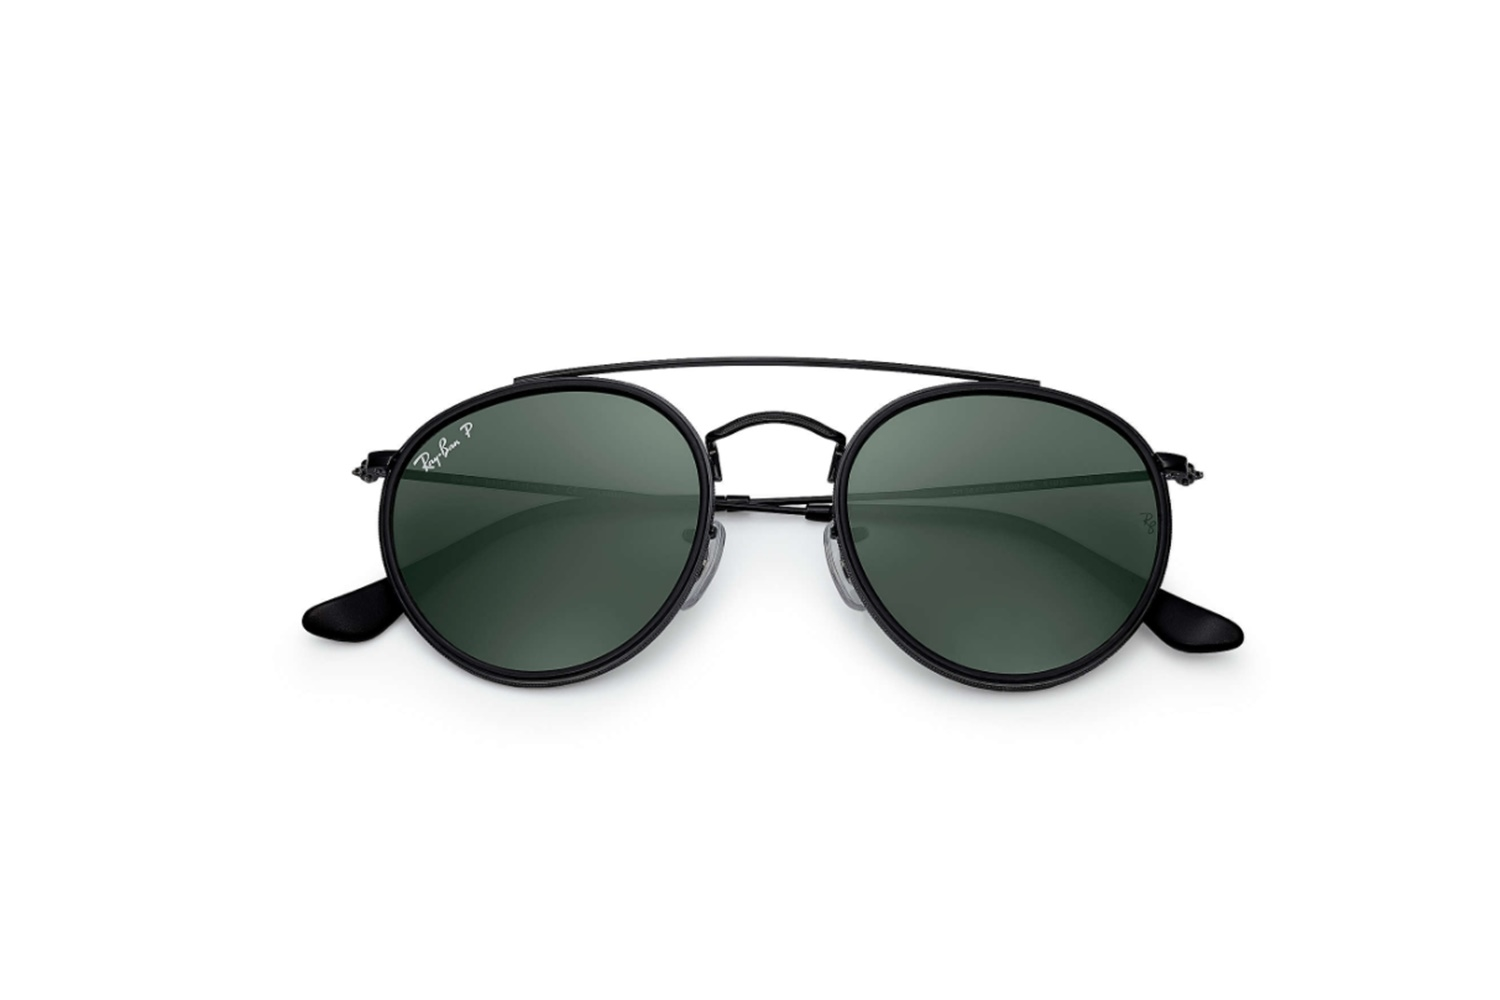 004353ee4a5 ... Ray-Ban Round Double Bridge - RB3647N (002 58) POLARIZED. Category    Sunglasses